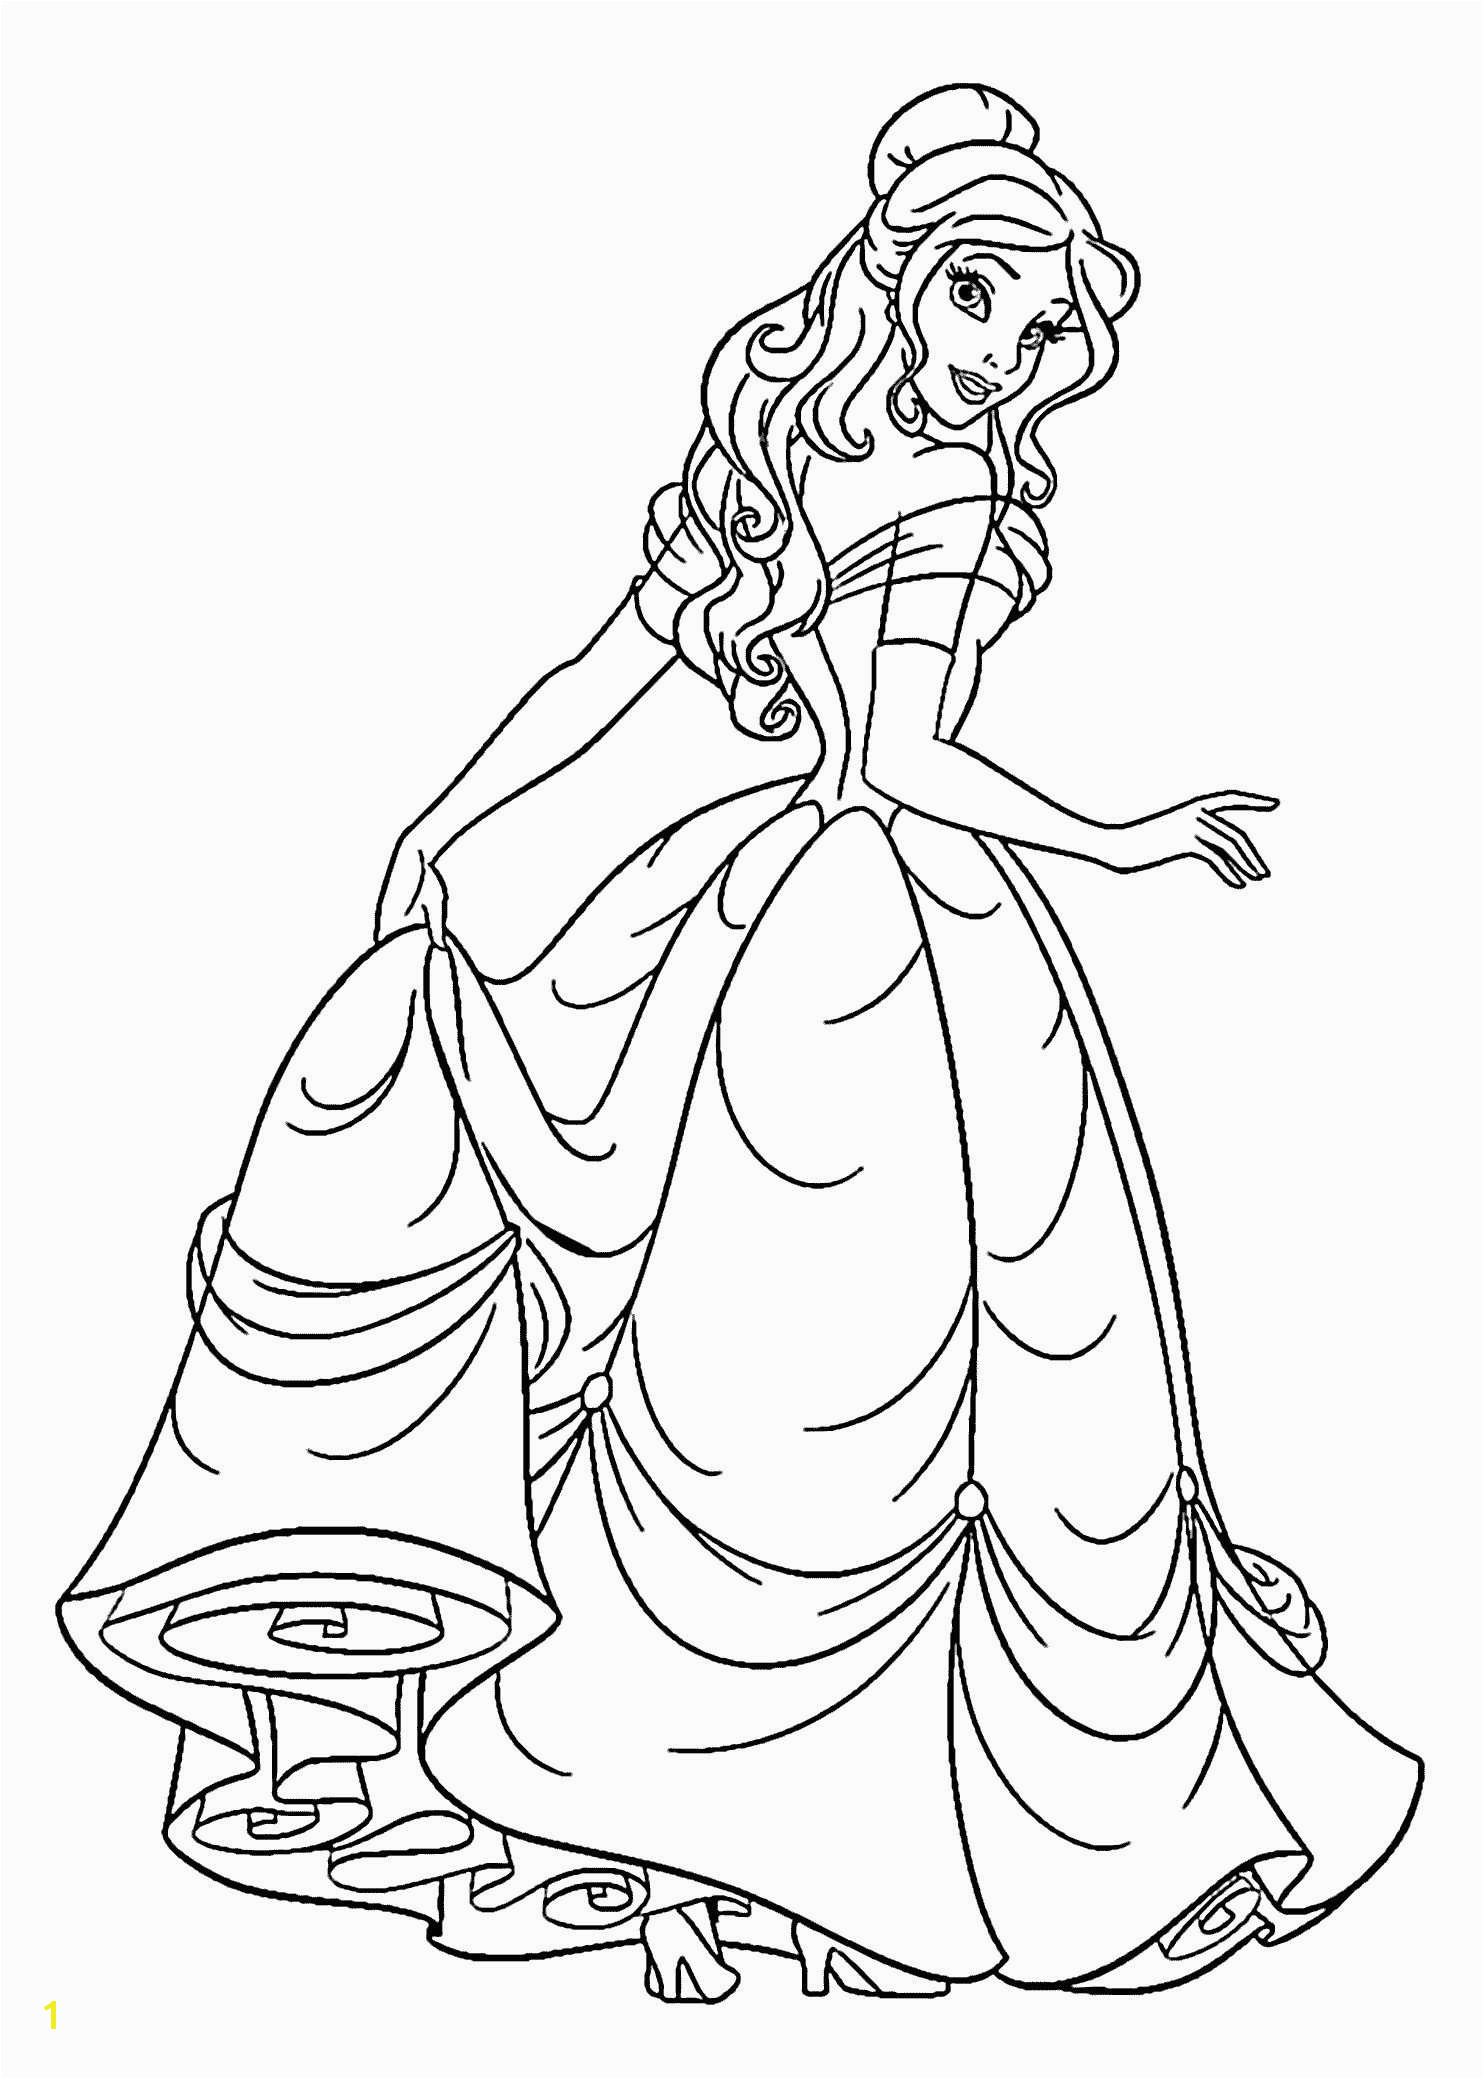 Free Disney Princess Coloring Pages Lovely Disney Princess Printable Coloring Pages Unique Cool Coloring Page